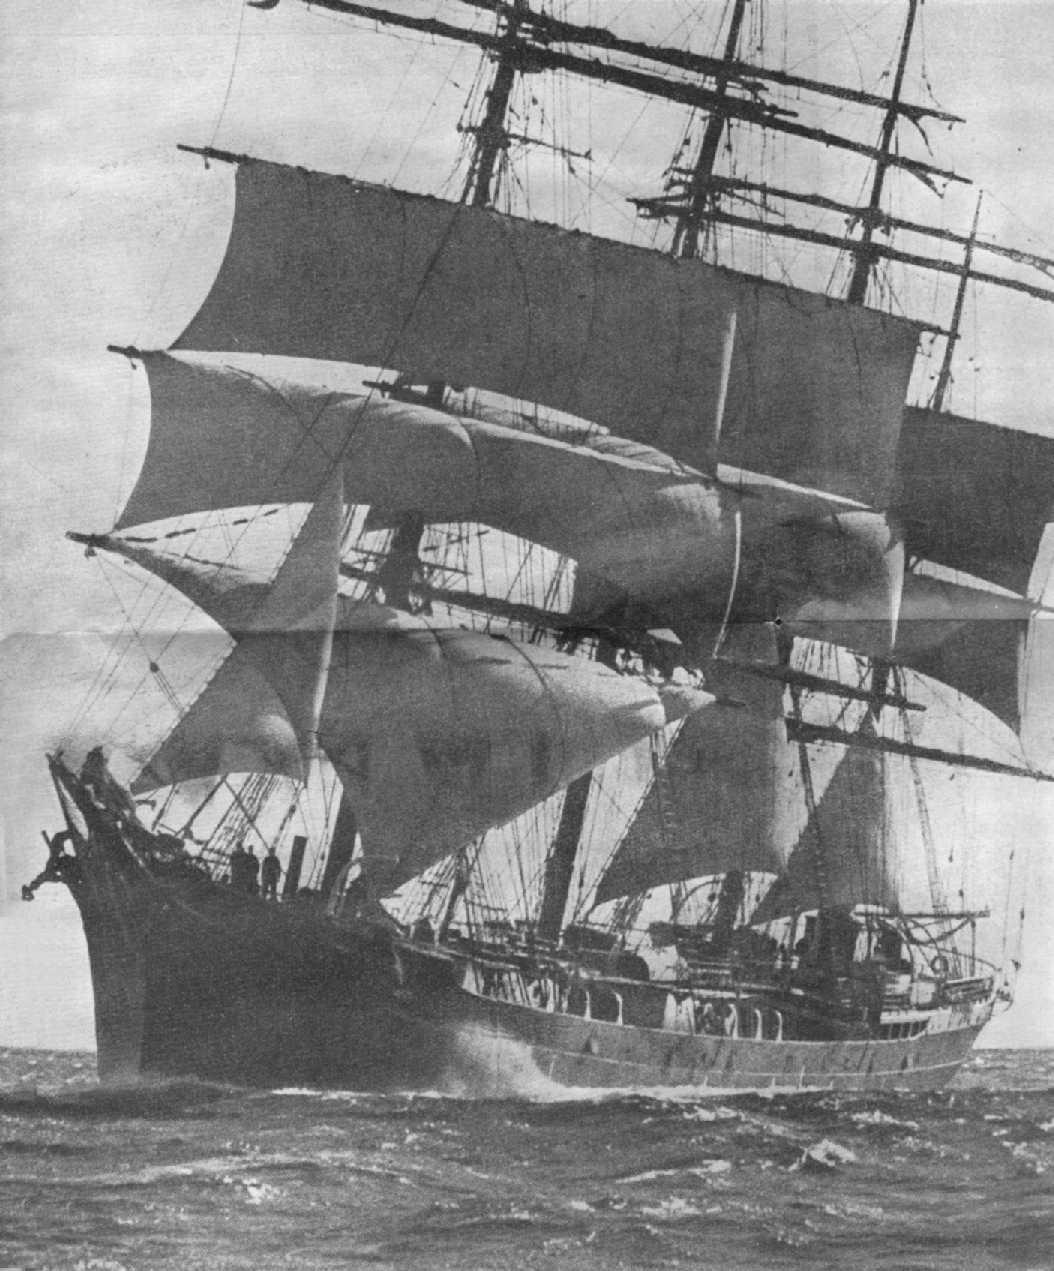 1891 Barque approaching Melbourne after a voyage of 198 days